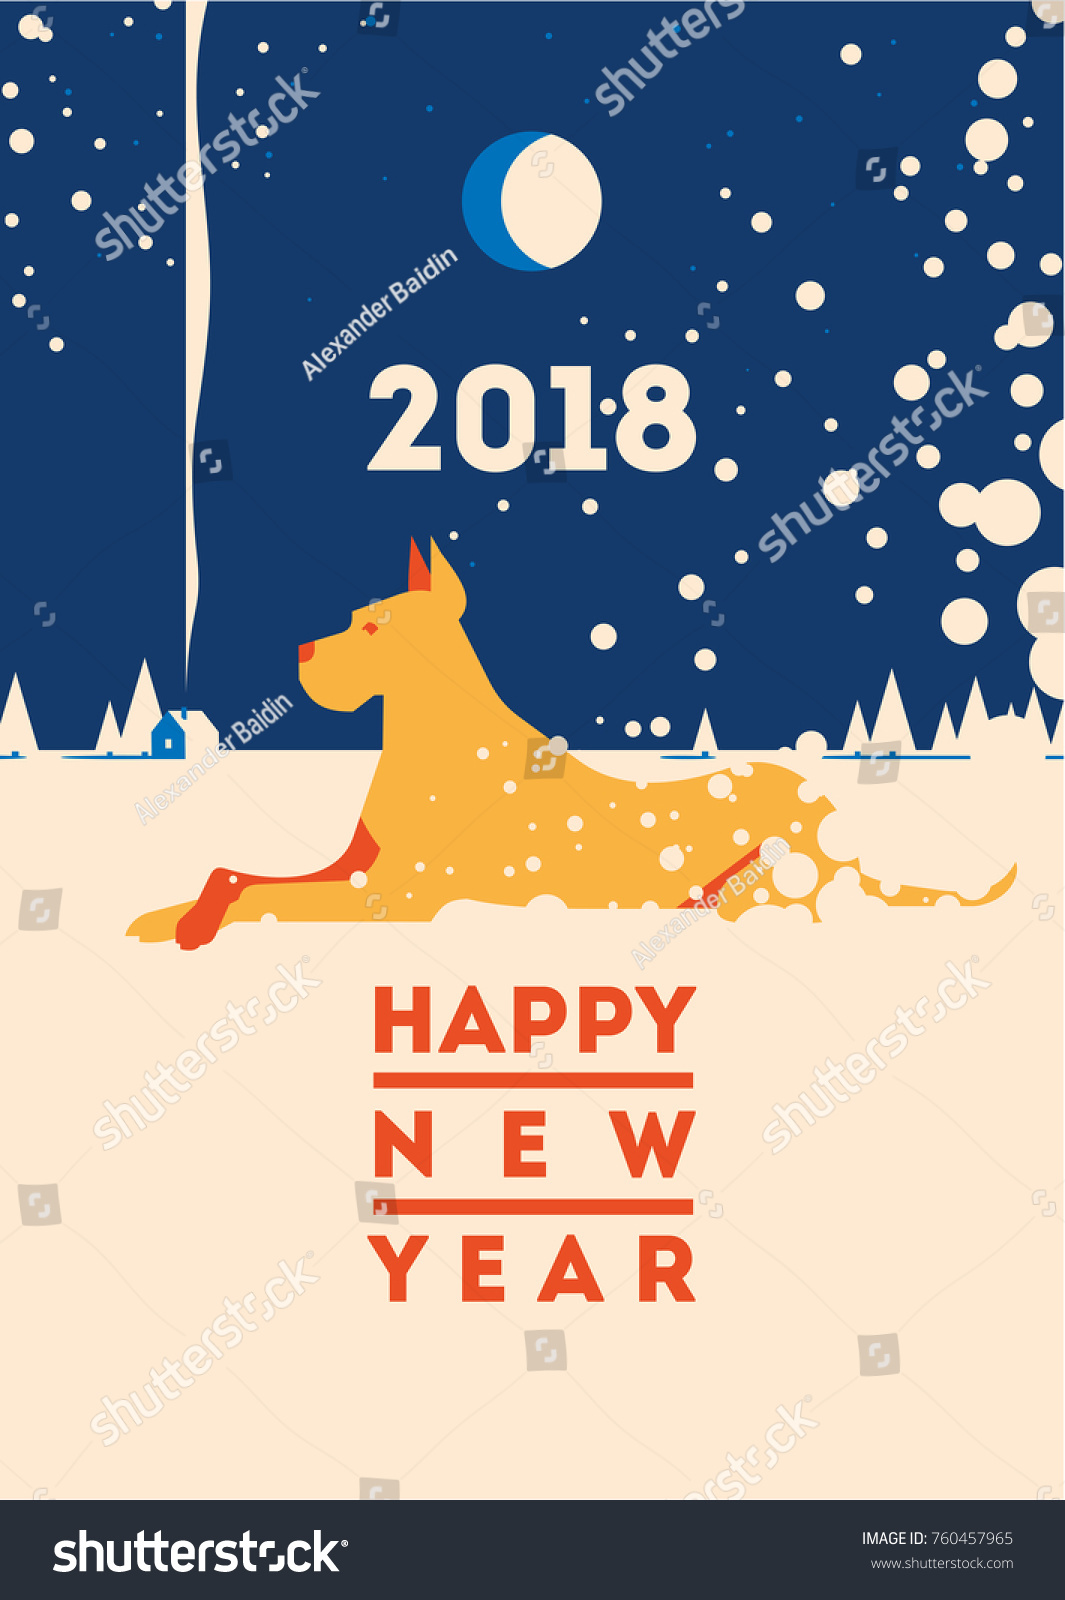 2018 Happy New Year Greeting Card Stock Vector 760457965 Shutterstock